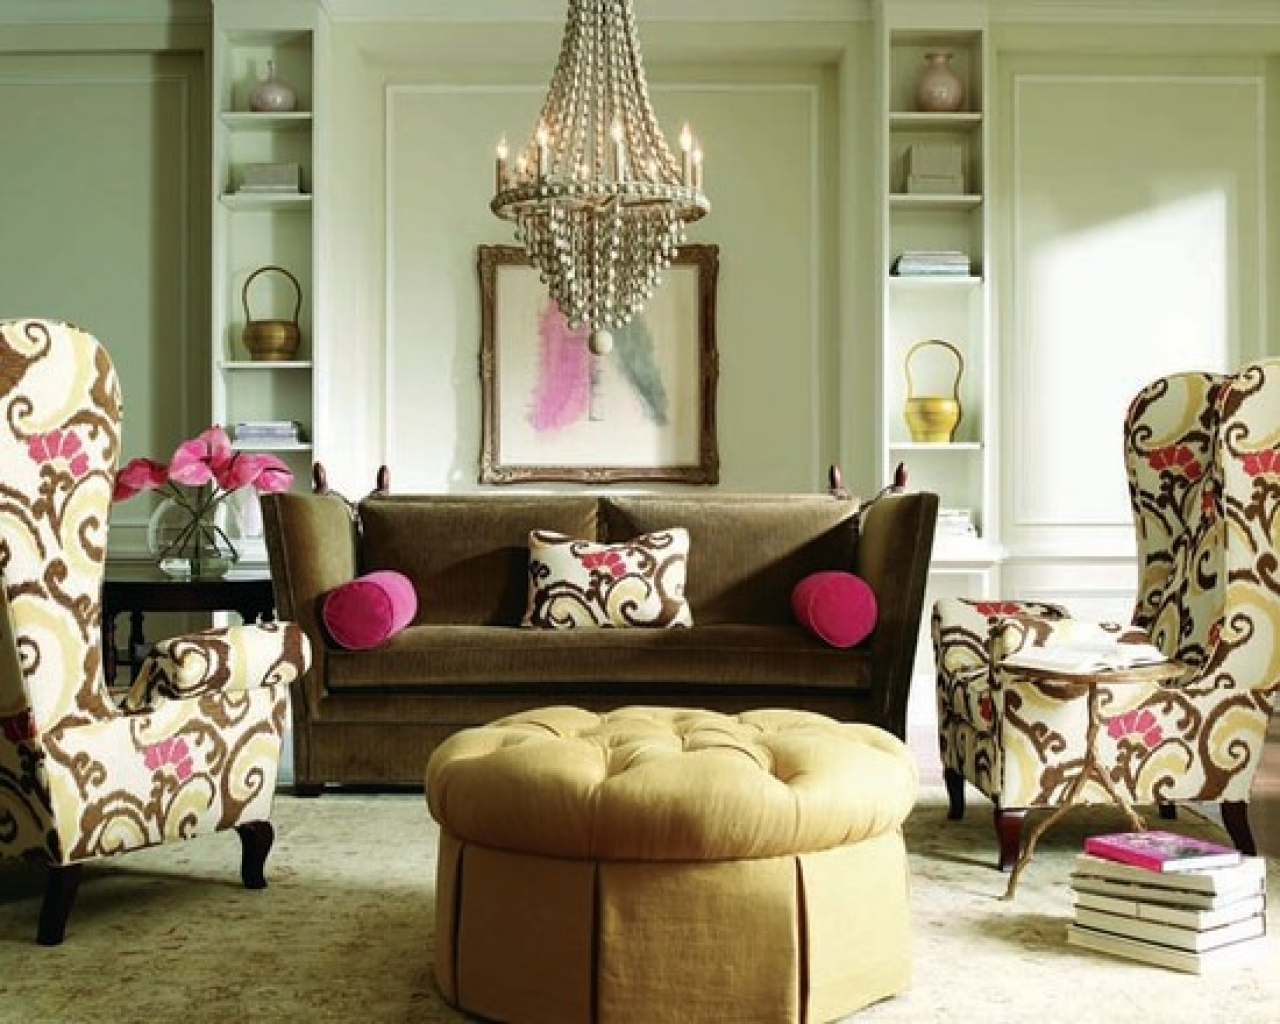 25 stunning eclectic living room decor ideas Eclectic home decor